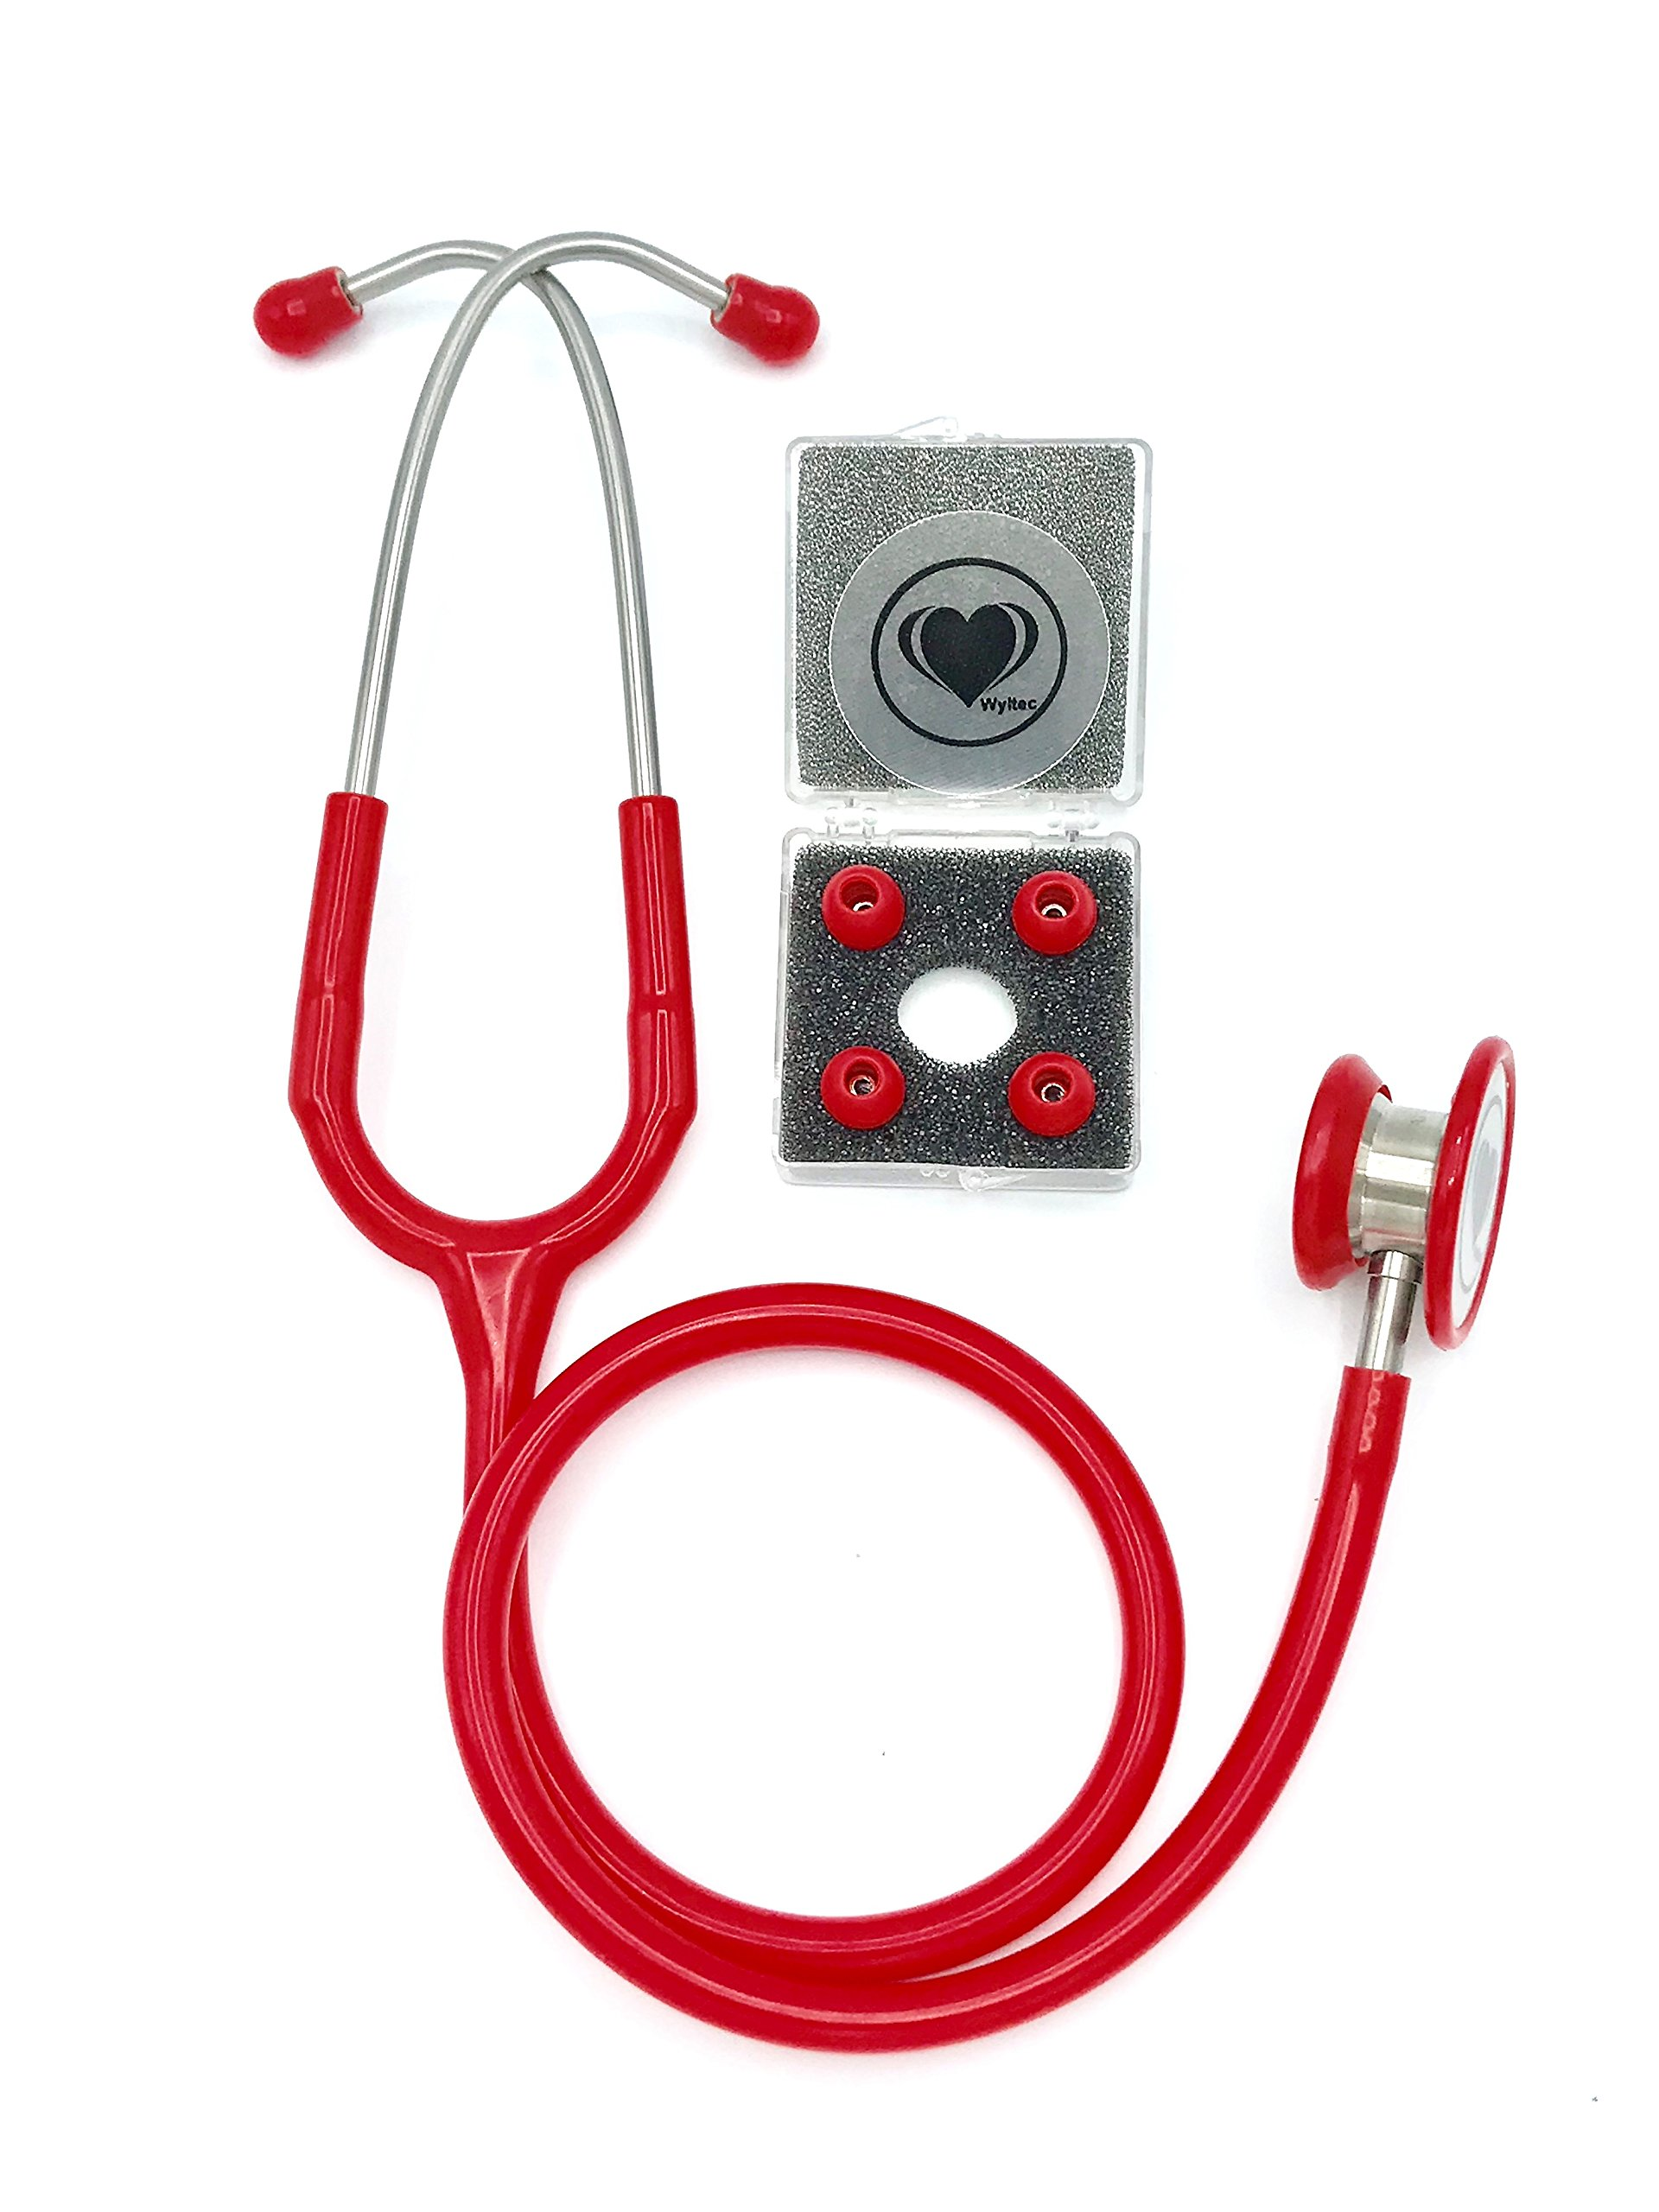 Wyltec Premium Stainless Steel Stethoscope - Dual Head - Chestpiece and binaurals, Offering Superior Clear Sound Transmission - Non-chill Rings, and Quality Diaphragm - Soft eartips (Red)